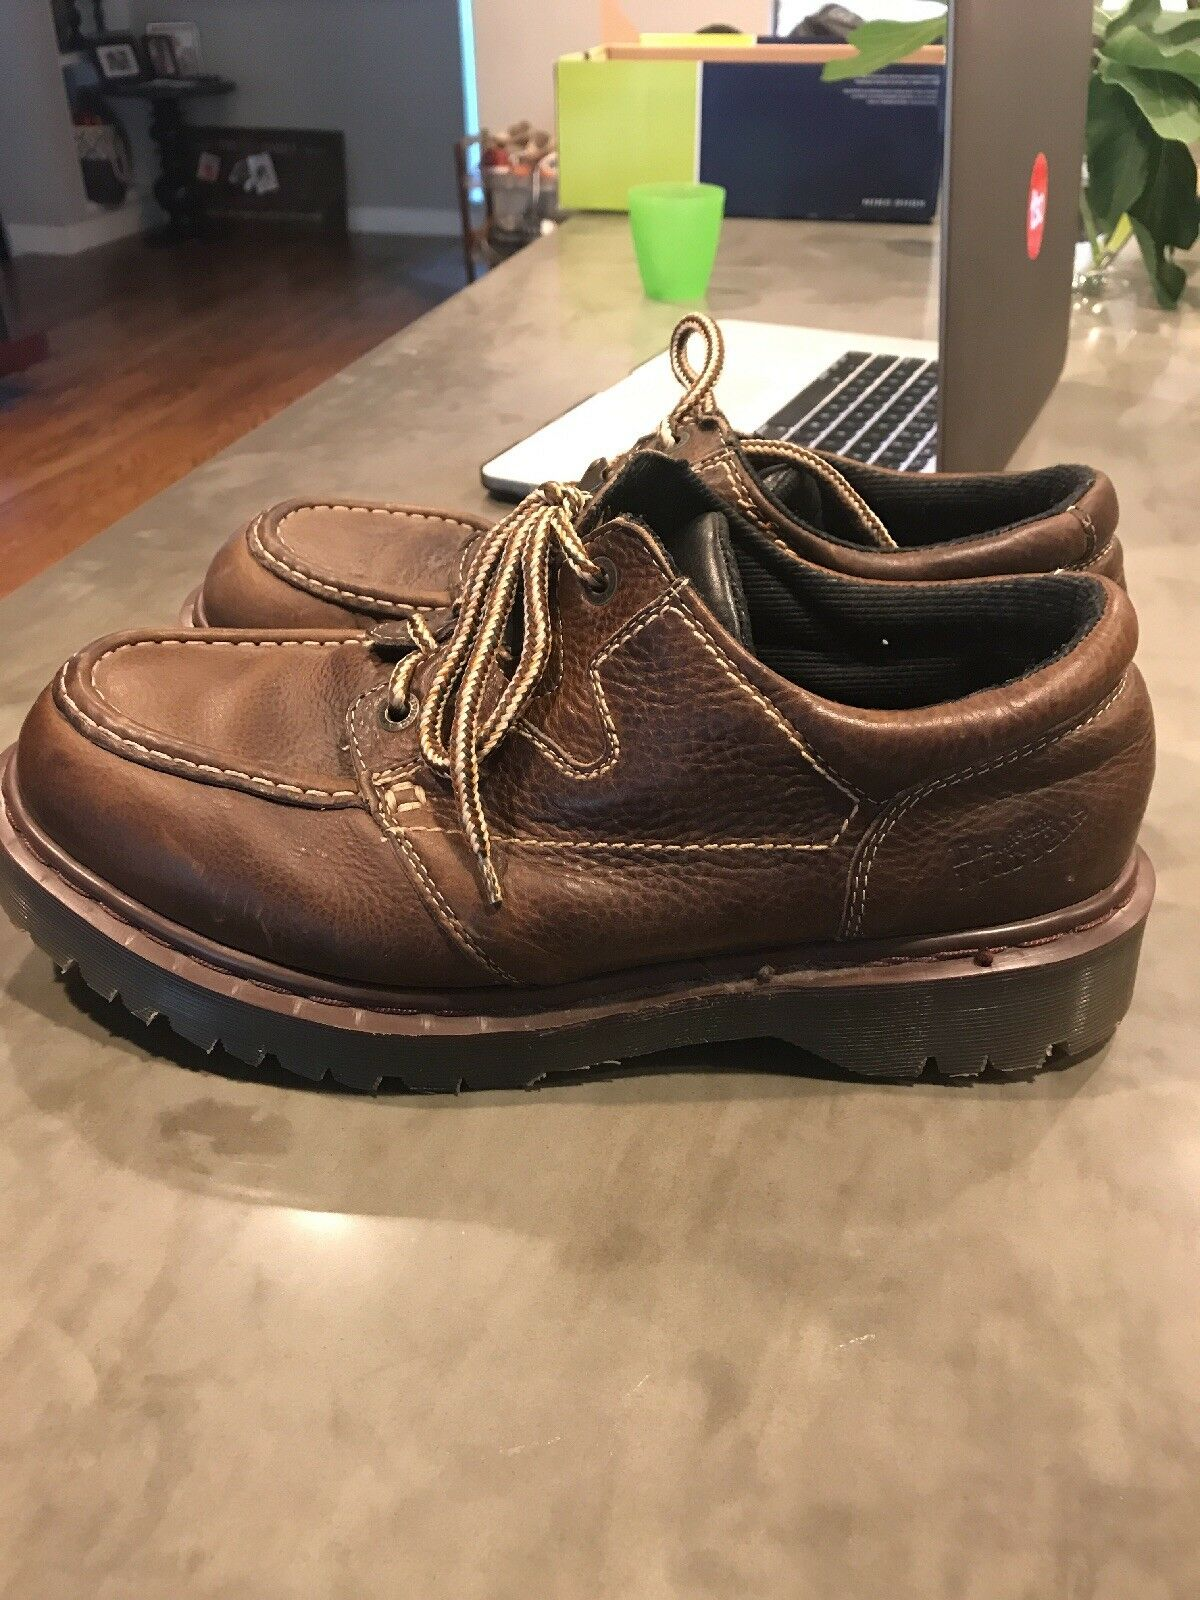 Doc Martens Oxford Leather Shoes Size 12 UK / 13 US